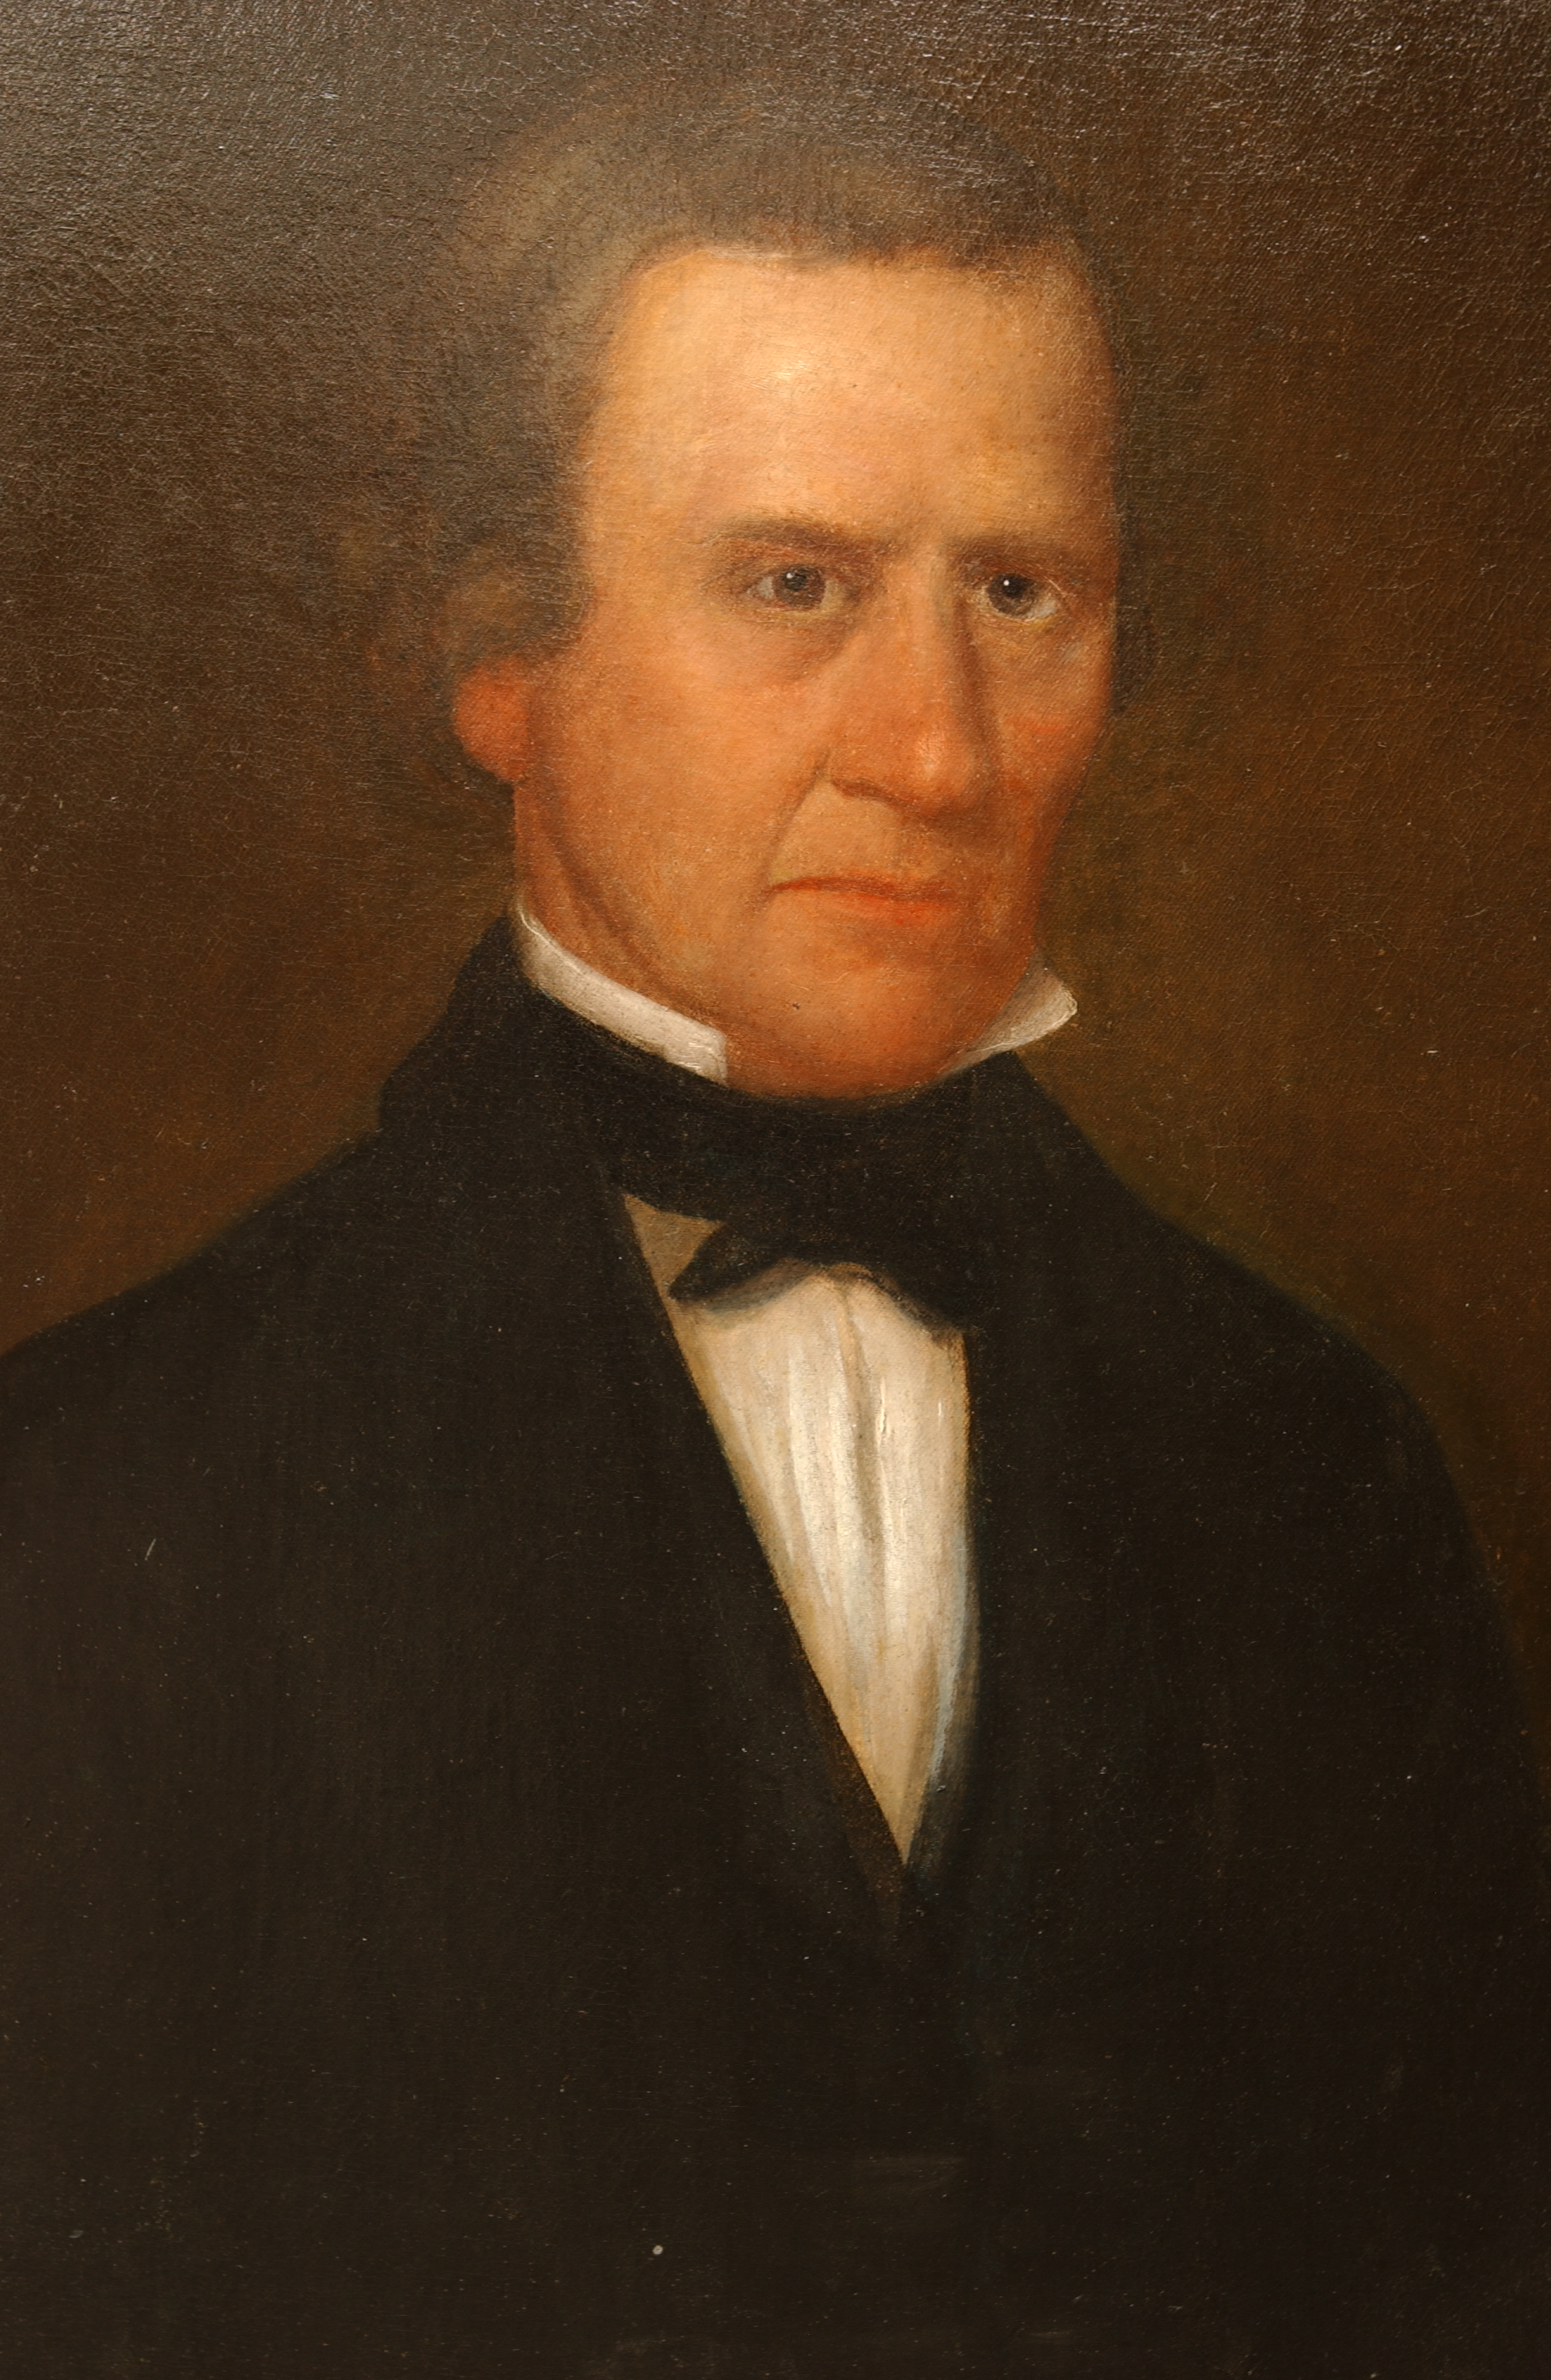 Painted portrait of Cephas Washburn with solemn face, wearing black suit